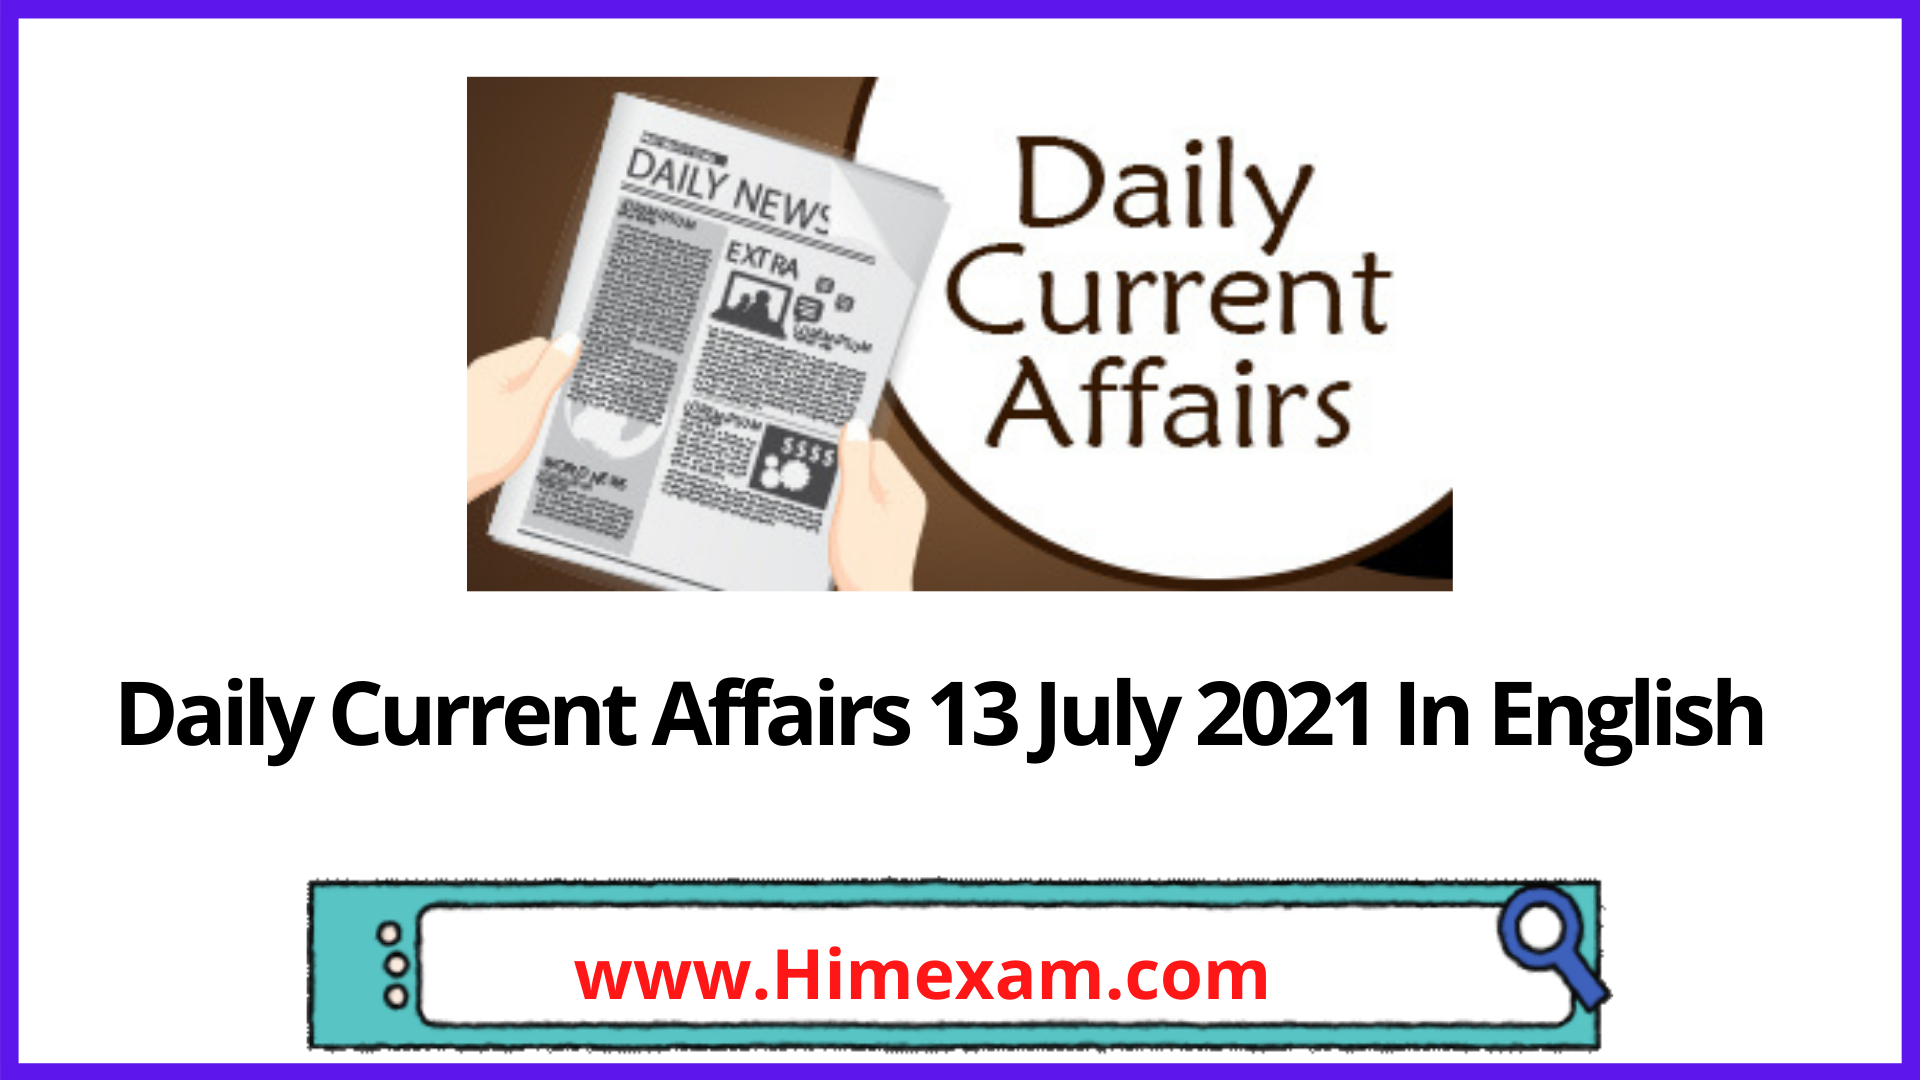 Daily Current Affairs 13 July 2021 In English